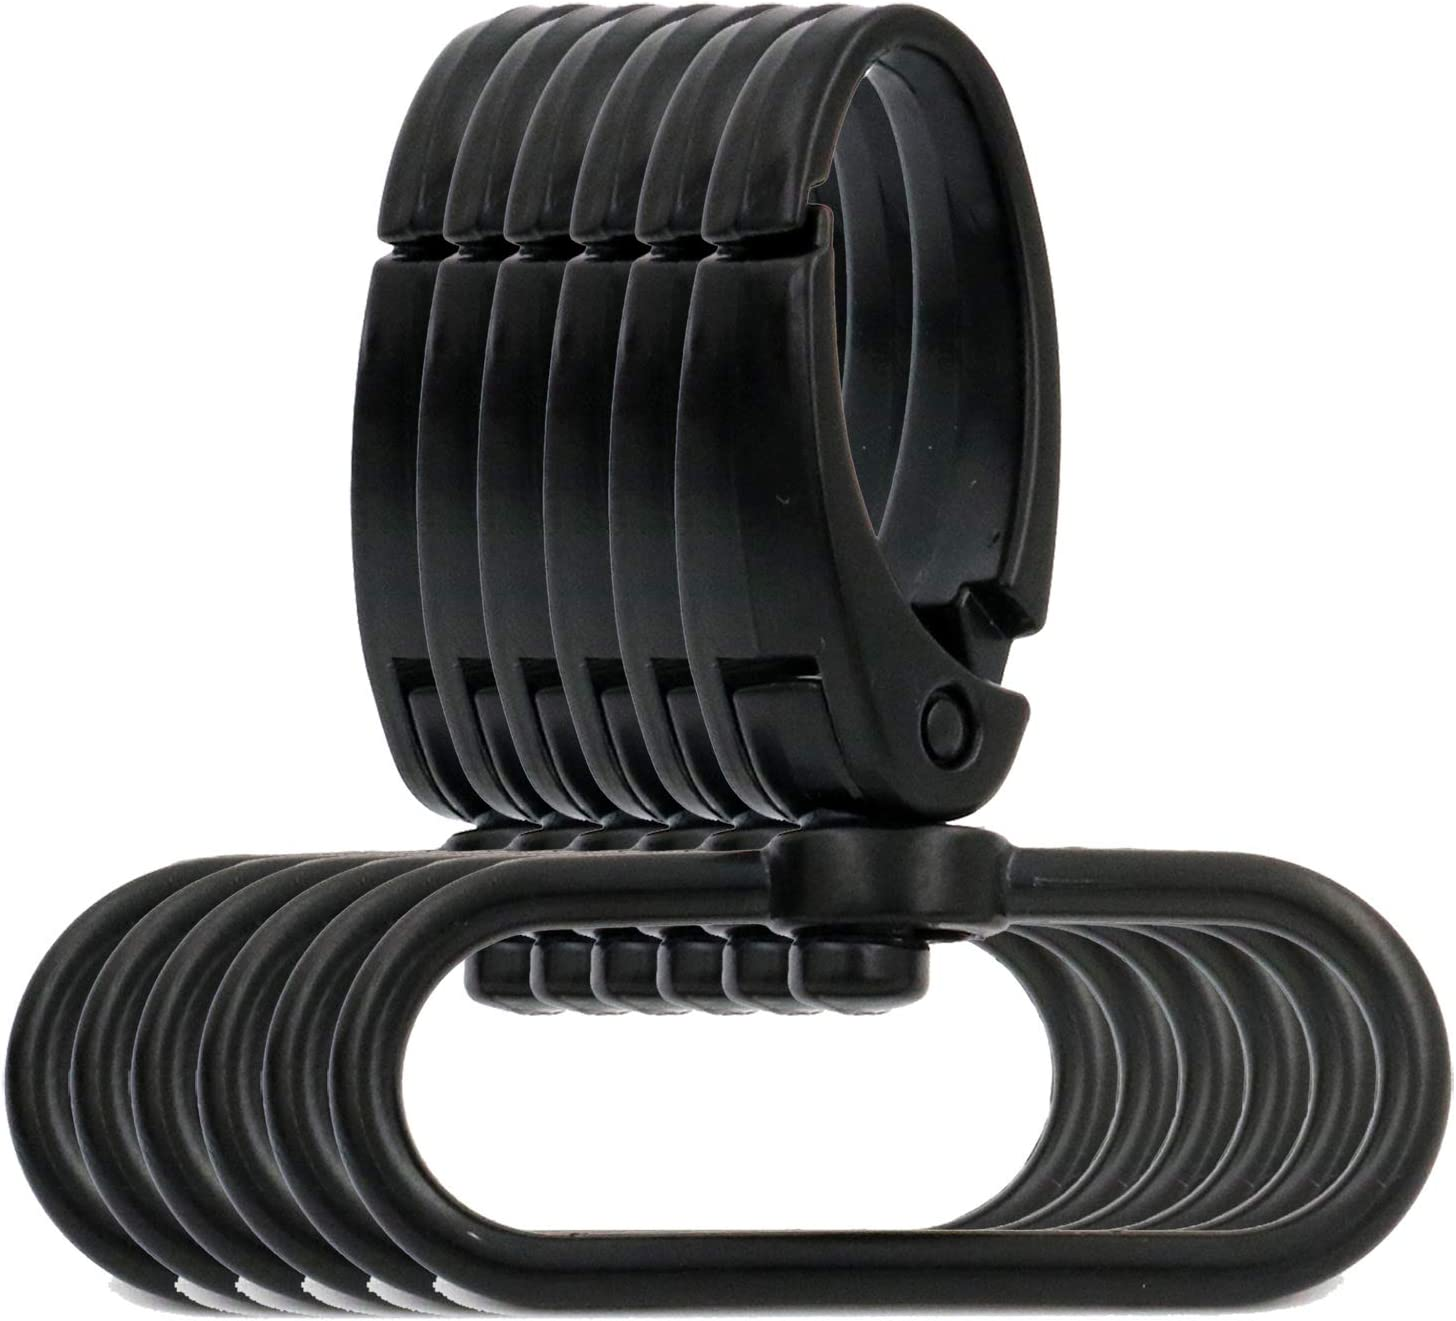 Oval Ring Ended BIKICOCO 1-1//2 Swivel Trigger Lever Push Gate Snap Hook Lobster Claw Clasp Spring Loaded Clip M-Size Pack of 10 Black